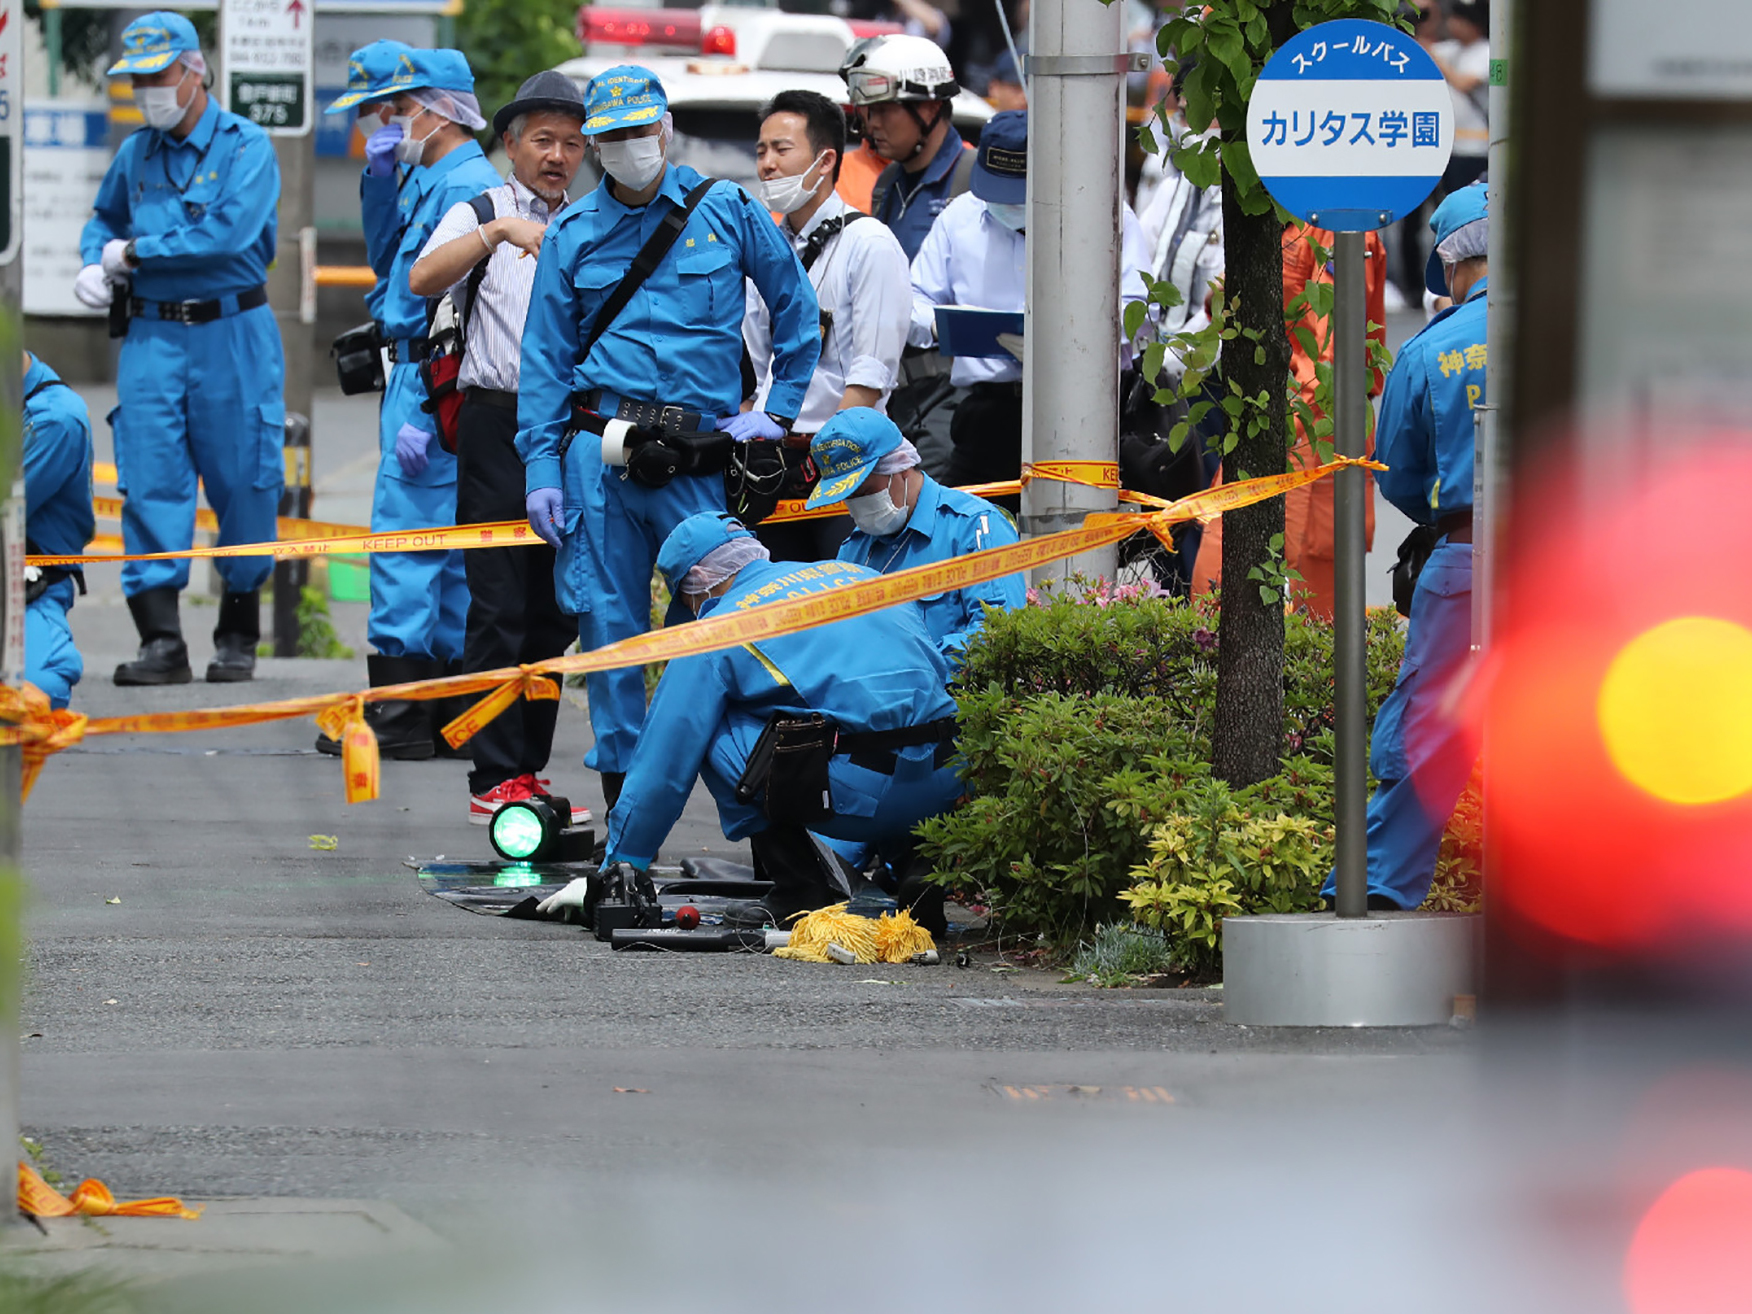 2 Killed, At Least 17 Others Injured In Japan Mass Stabbing